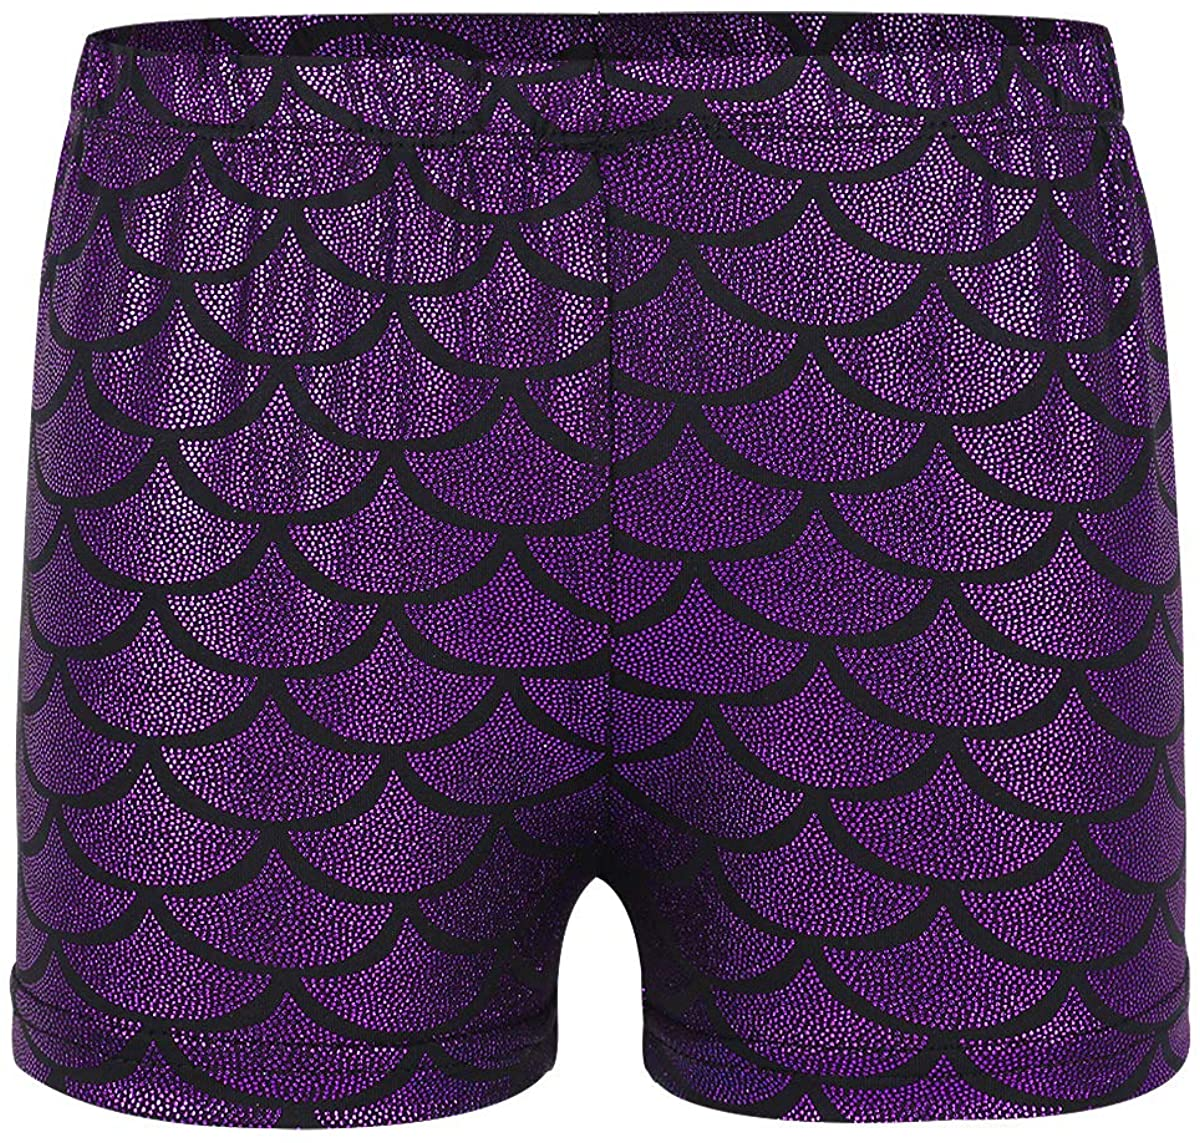 iiniim Girls' Mermaid Fish Scale Gymnastics Dance Cheer Booty Shorts Hot Pants Shiny Biketards Bottoms